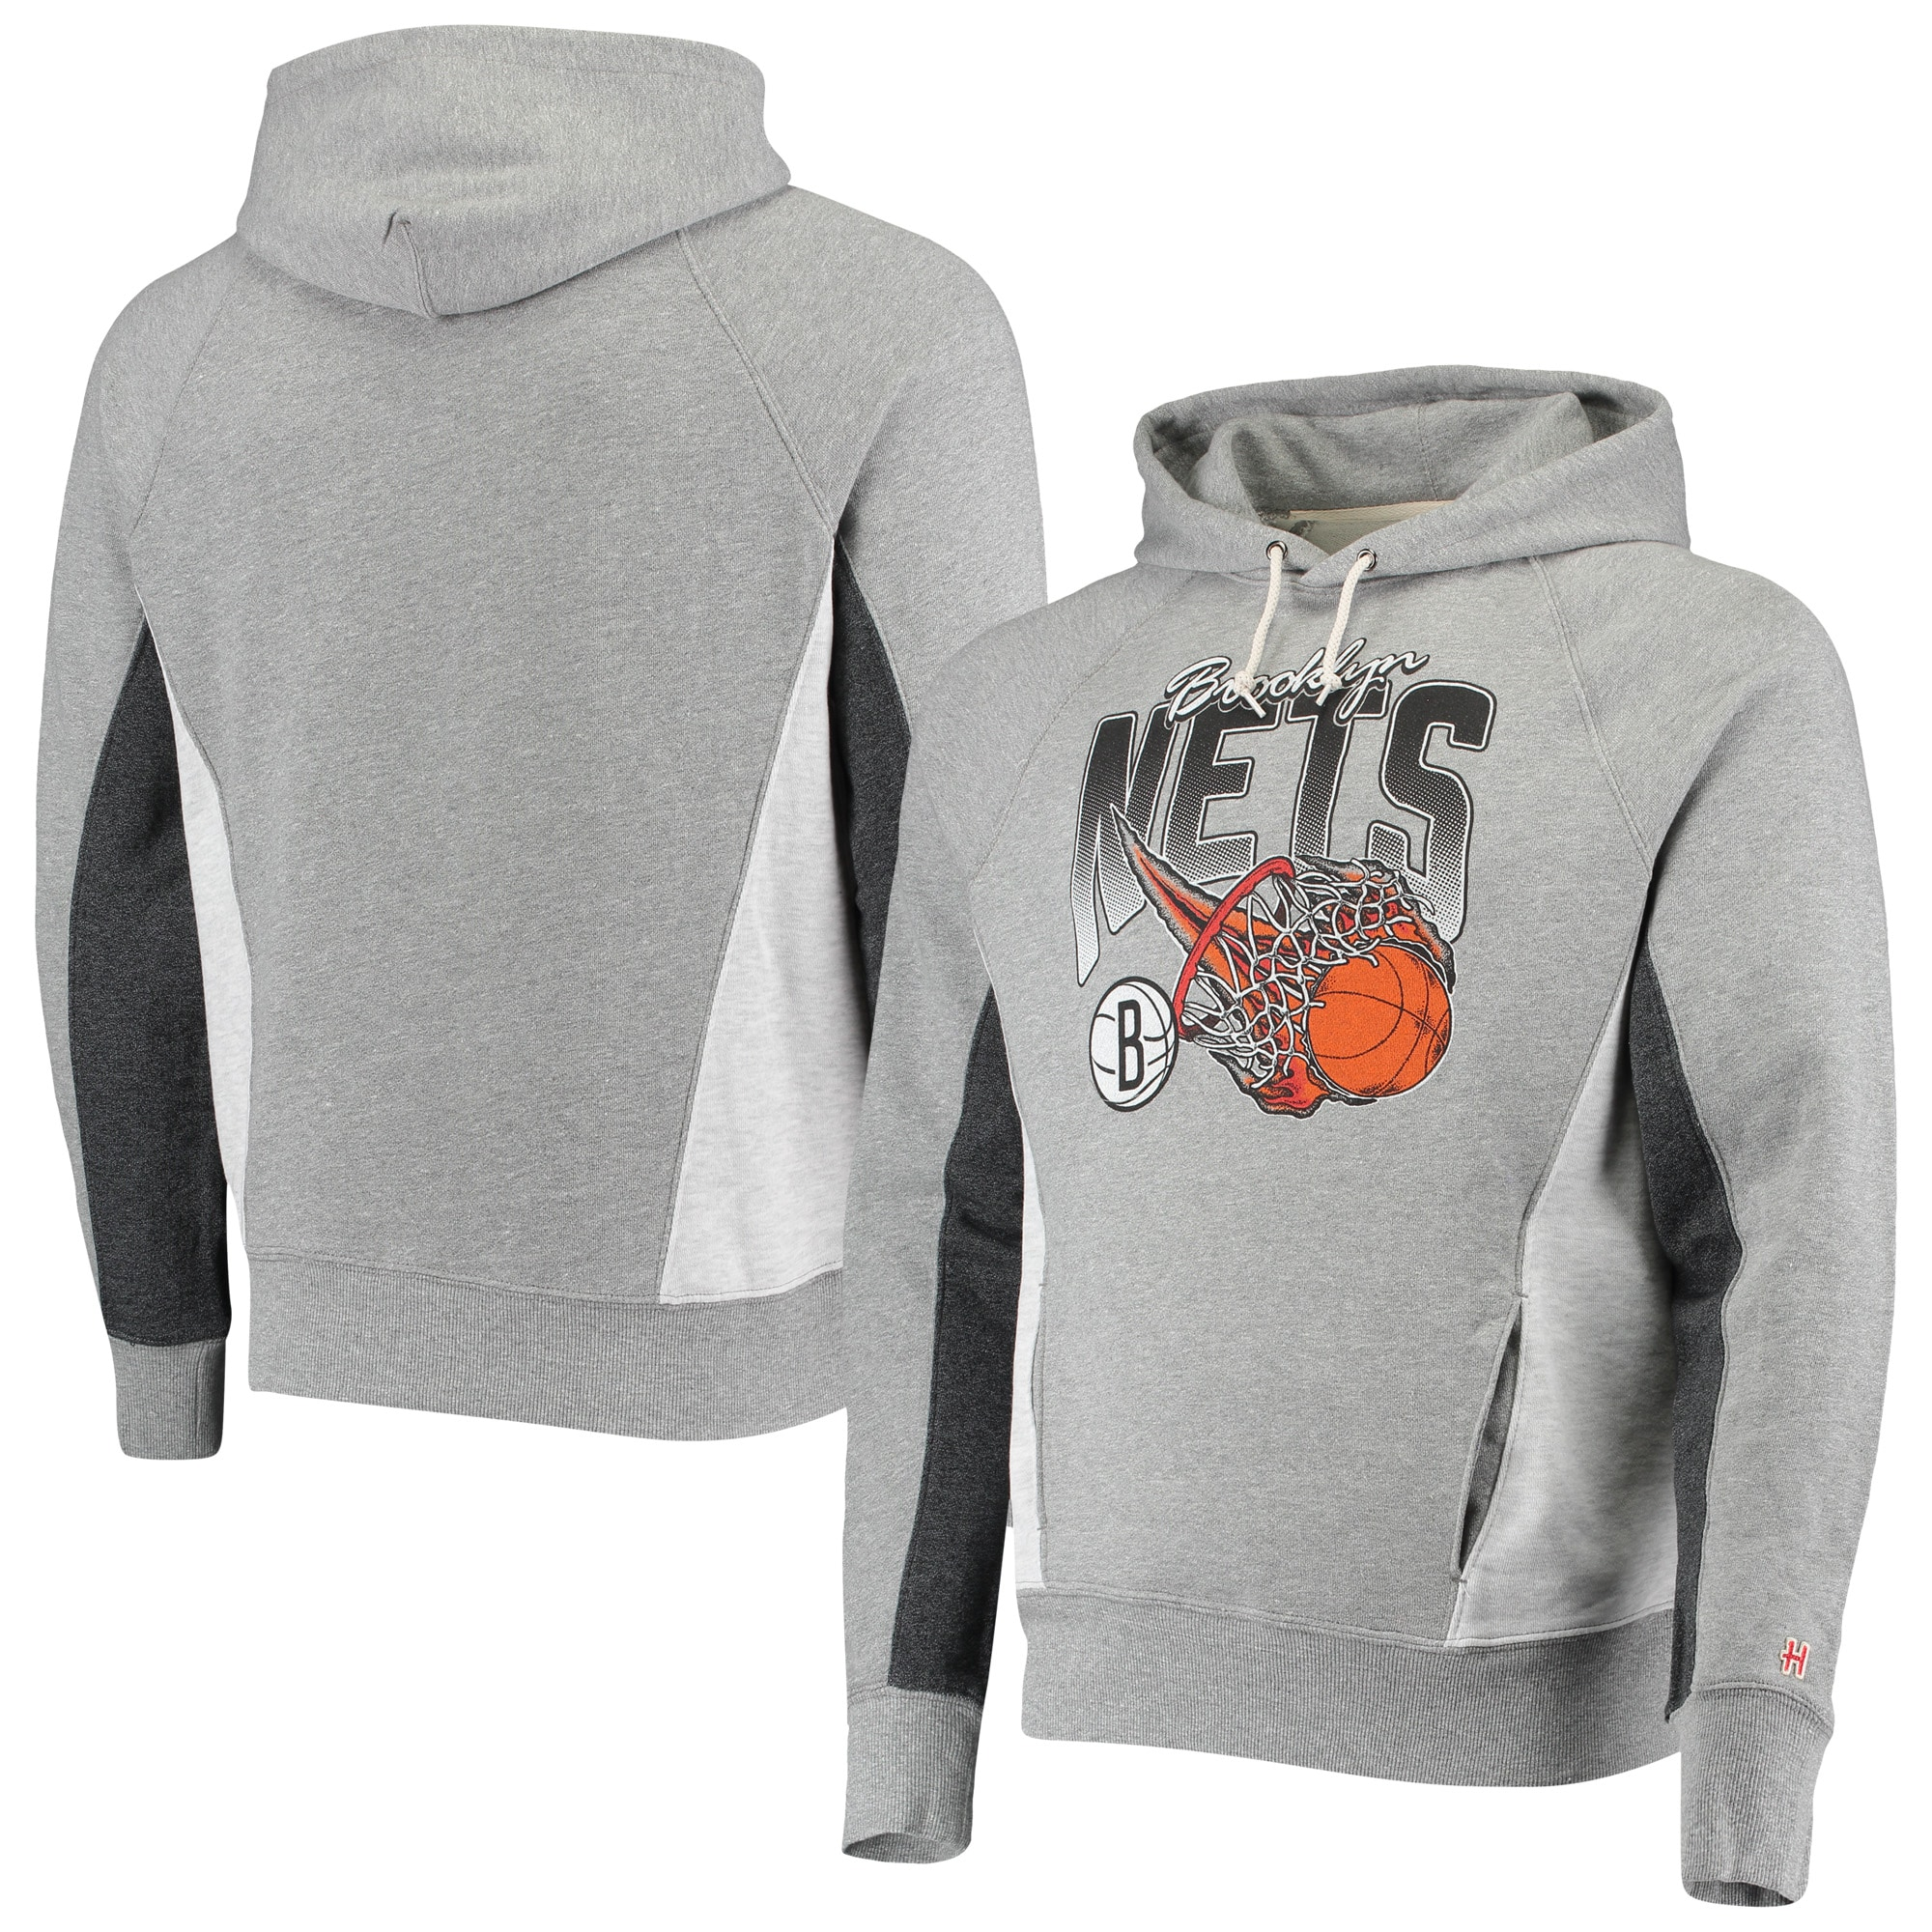 Brooklyn Nets Homage On Fire Tri-Blend Pullover Hoodie - Gray/Charcoal